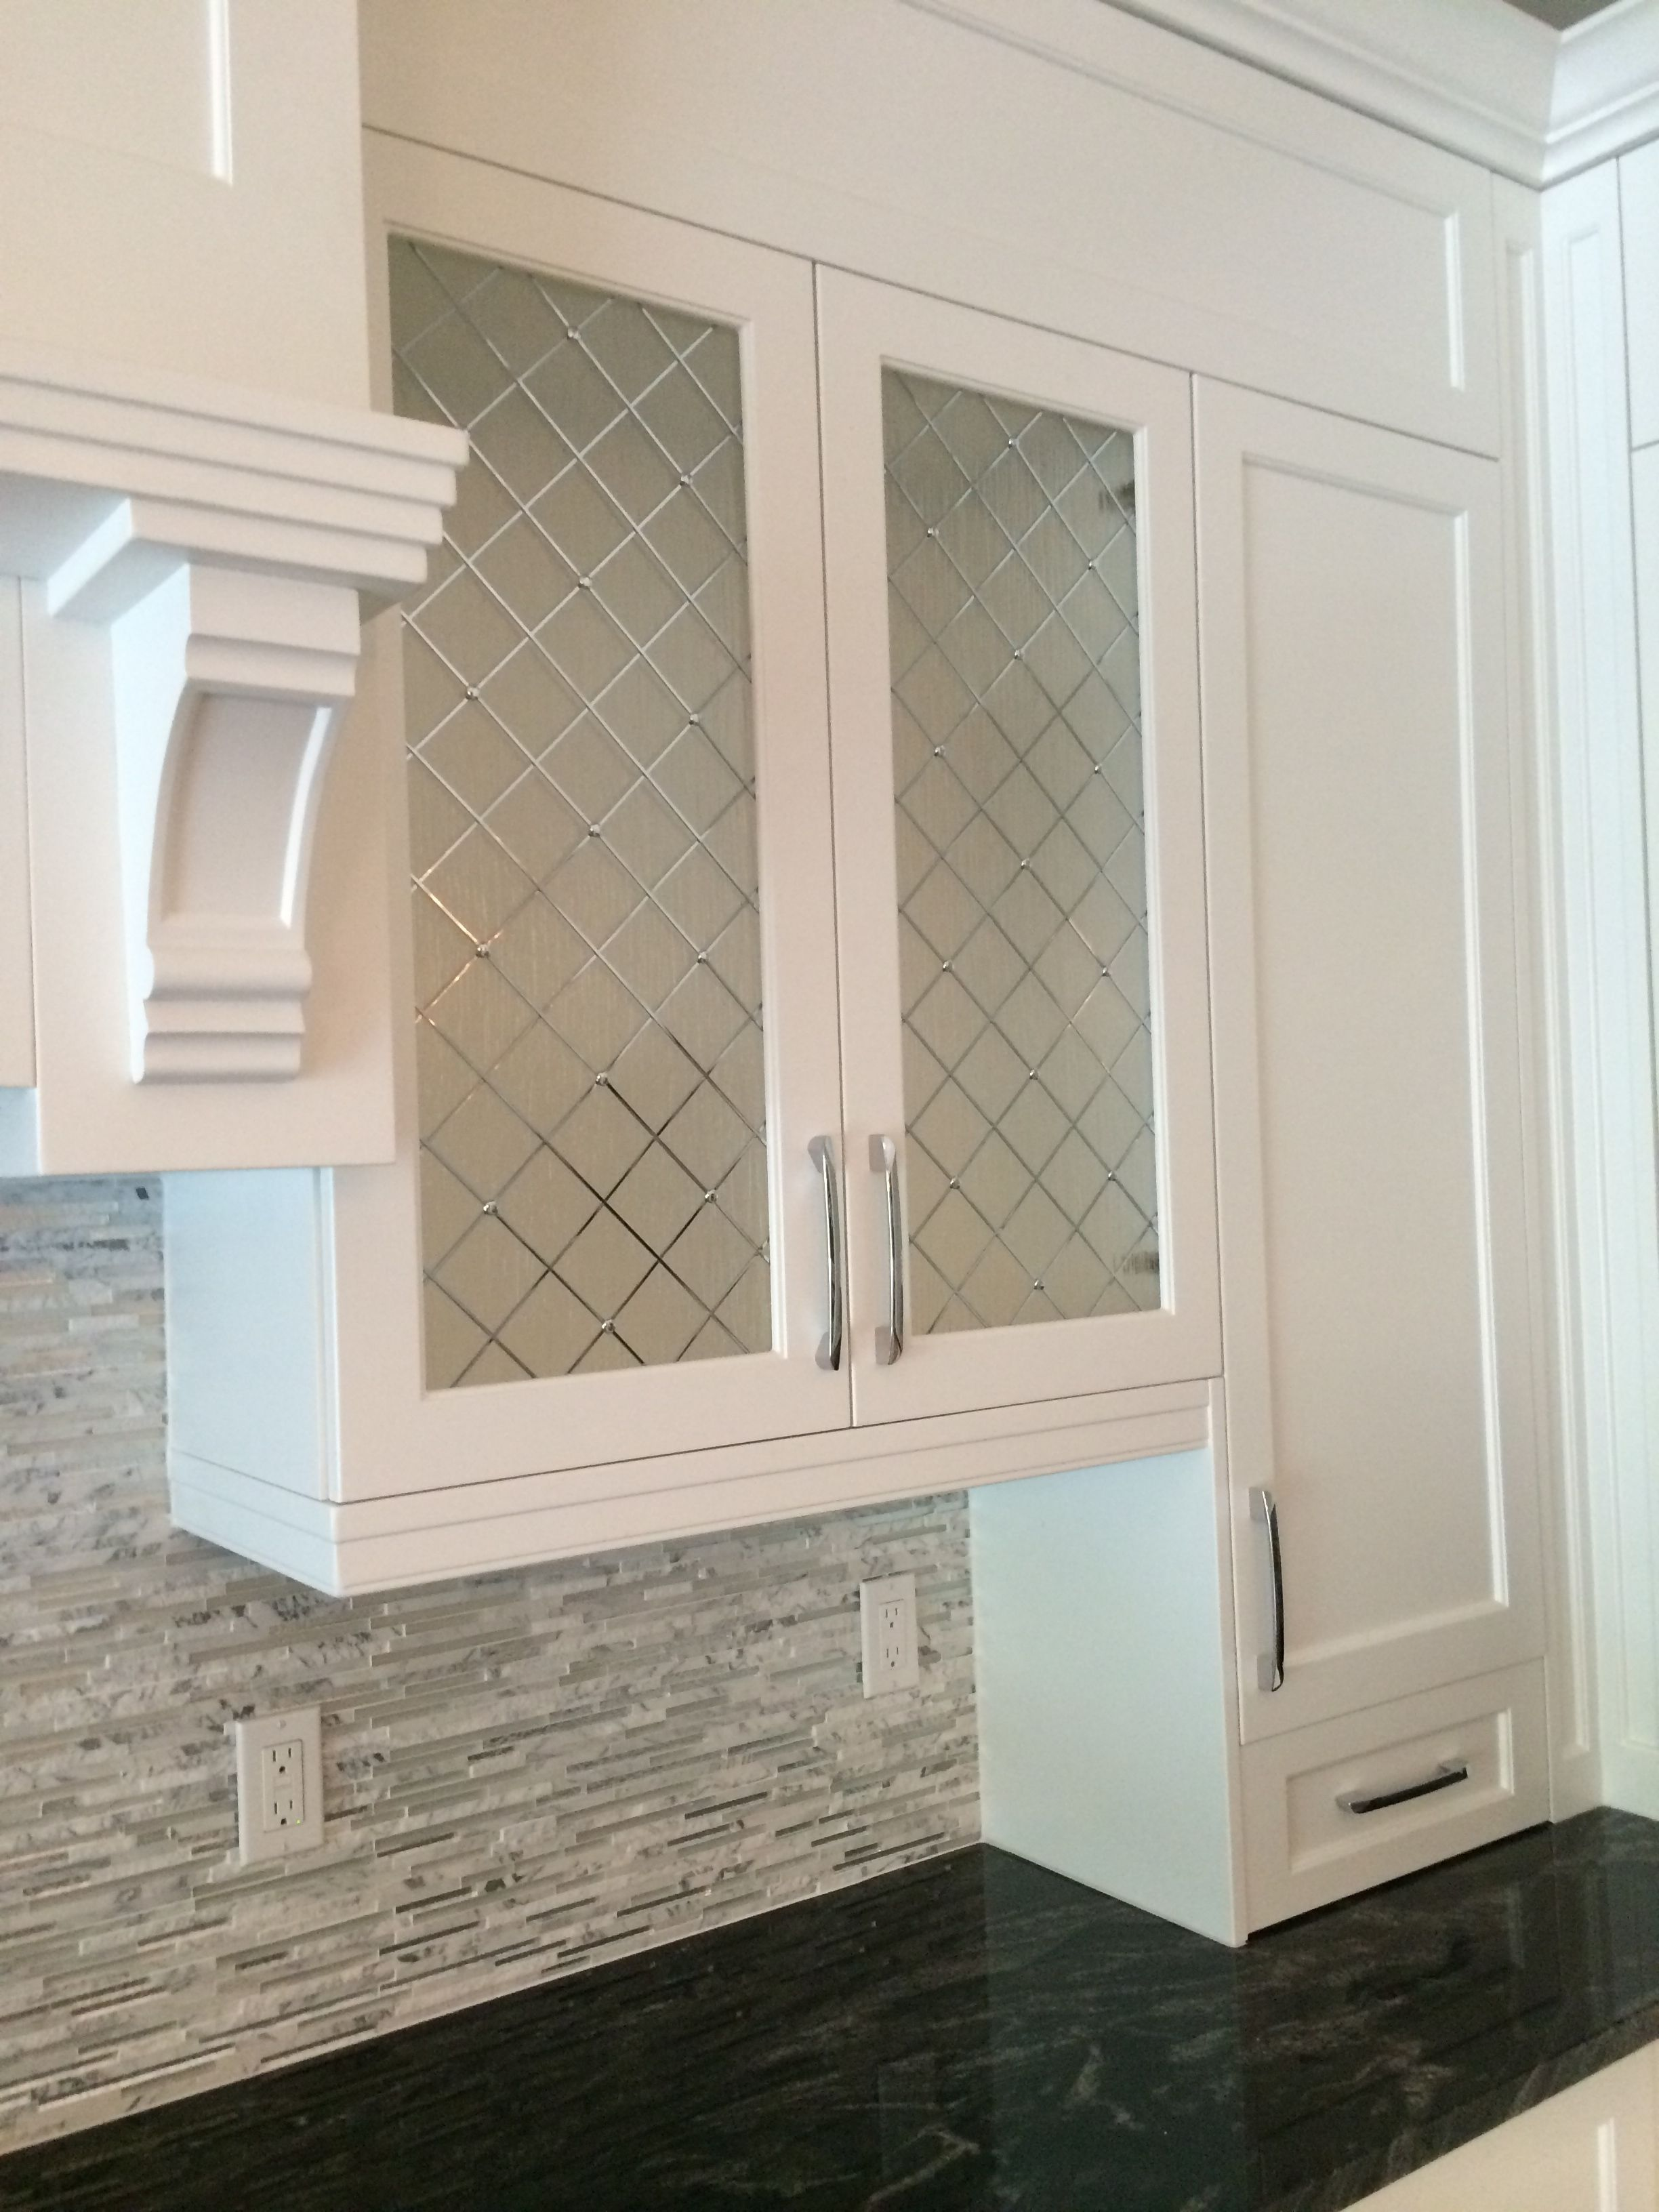 Decorative cabinet glass PATTEREND GLASS Pinterest